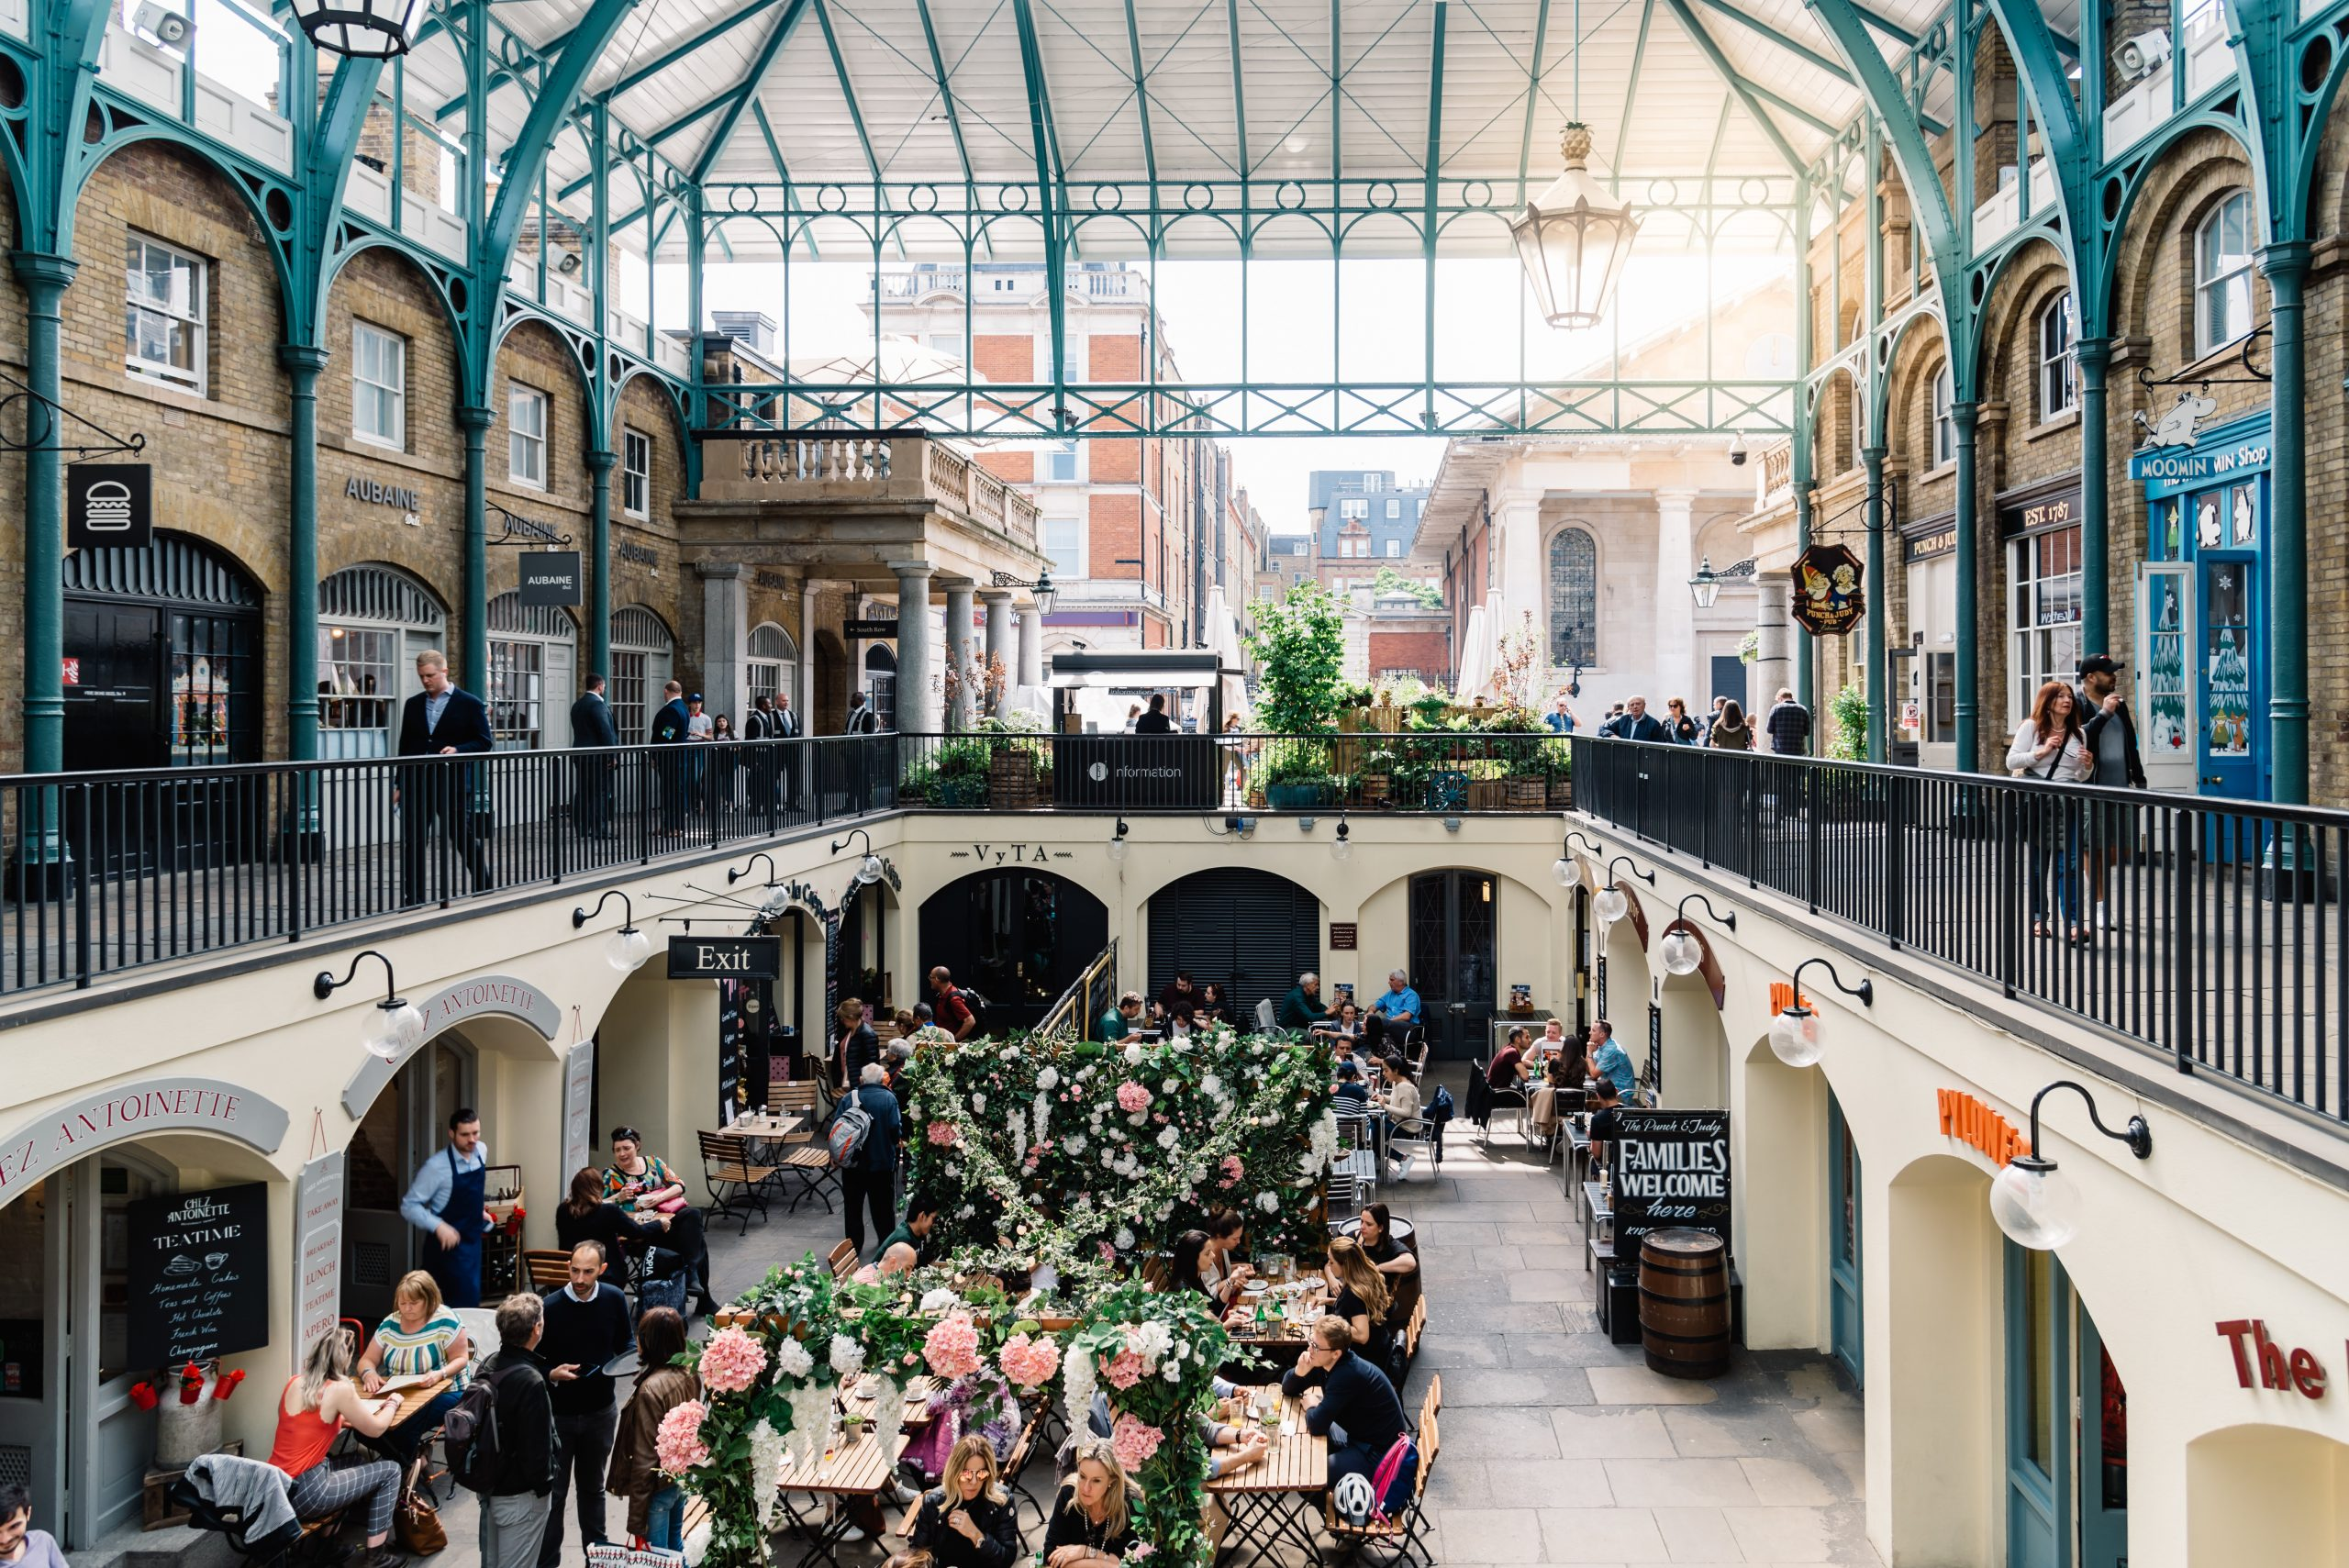 Covent Garden - places to visit london, london what to visit, best things to do in london 2020